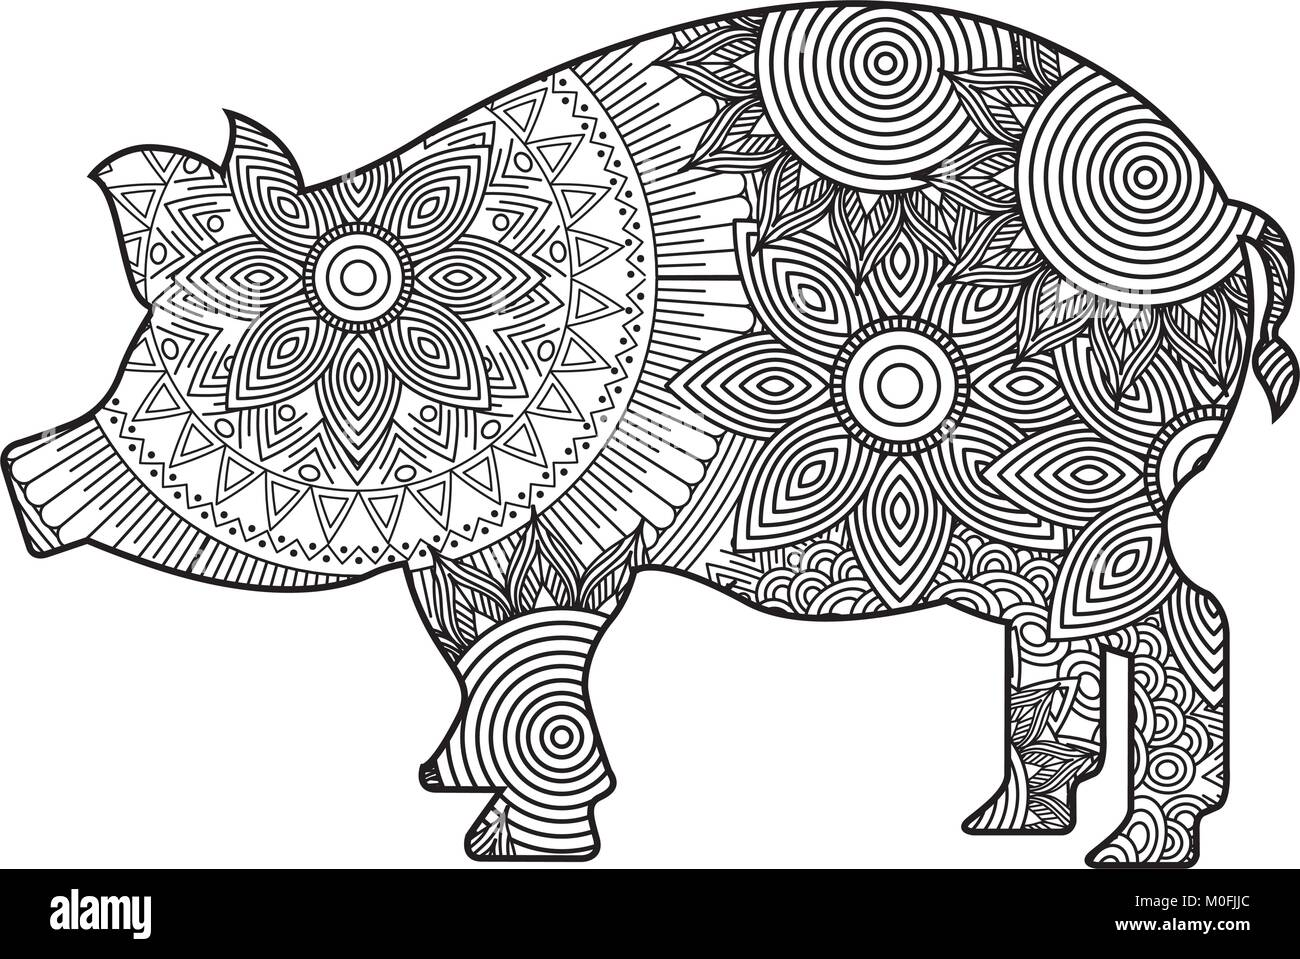 Hand Drawn For Adult Coloring Pages With Pig Zentangle Monochrome